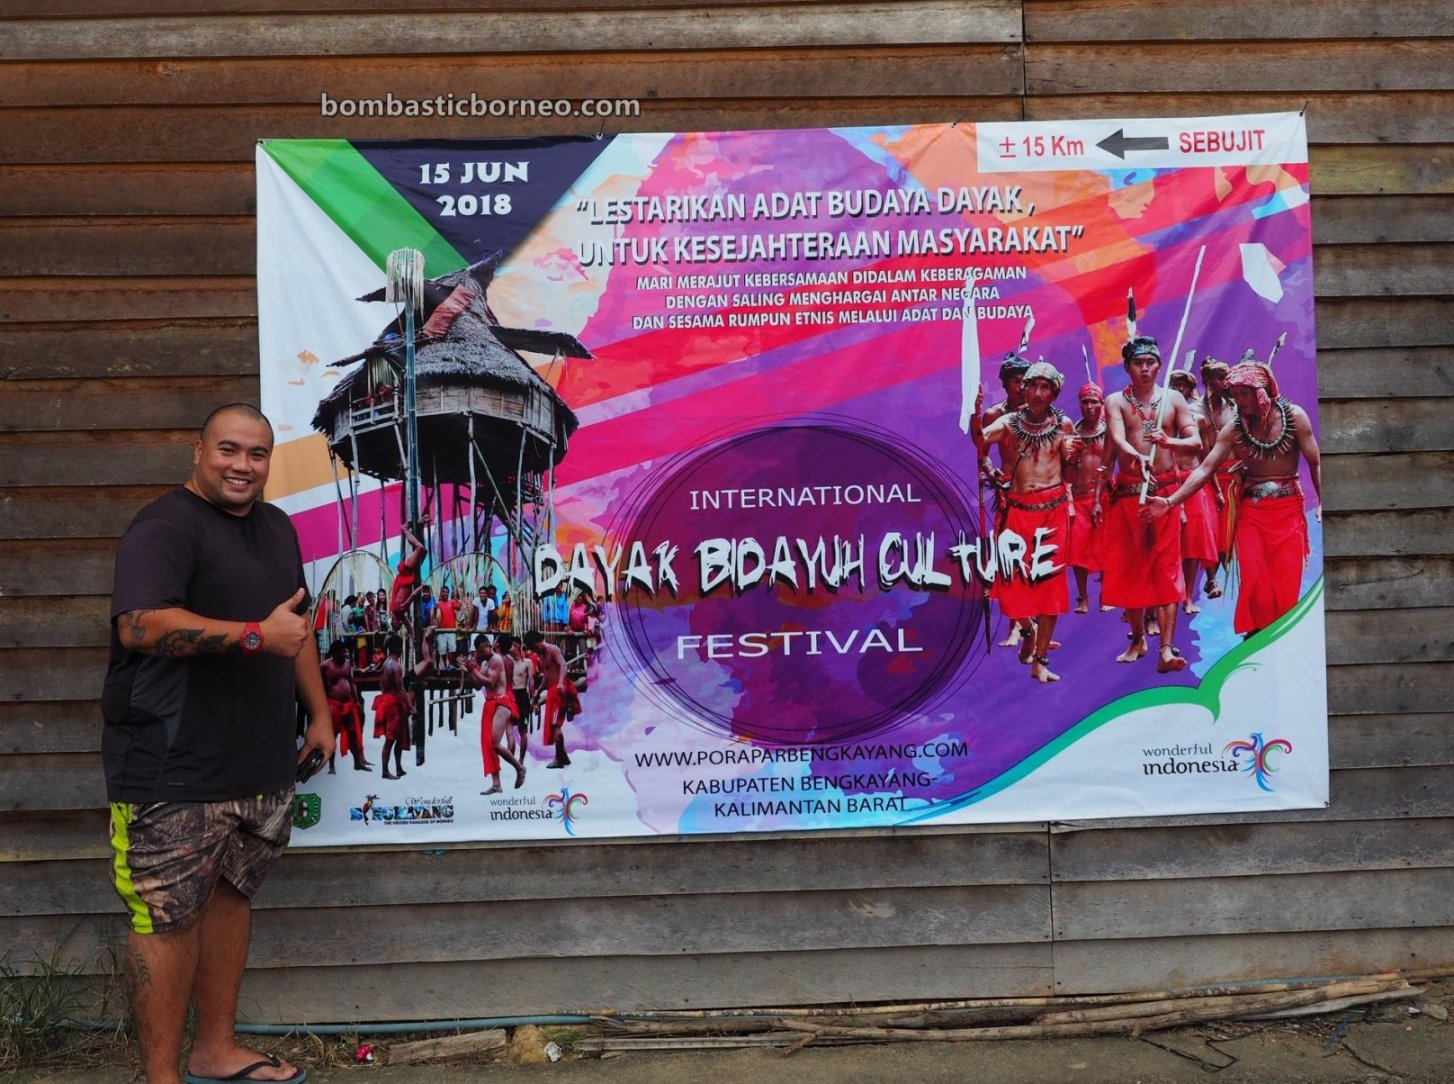 Nyobeng Sebujit, Gawai Harvest Festival, authentic, destination, event, Bengkayang, Indonesia, West Kalimantan, Desa Hli Buei, Siding, Dayak Bidayuh, native, wisata budaya, Tourism, travel guide, Cross Border,